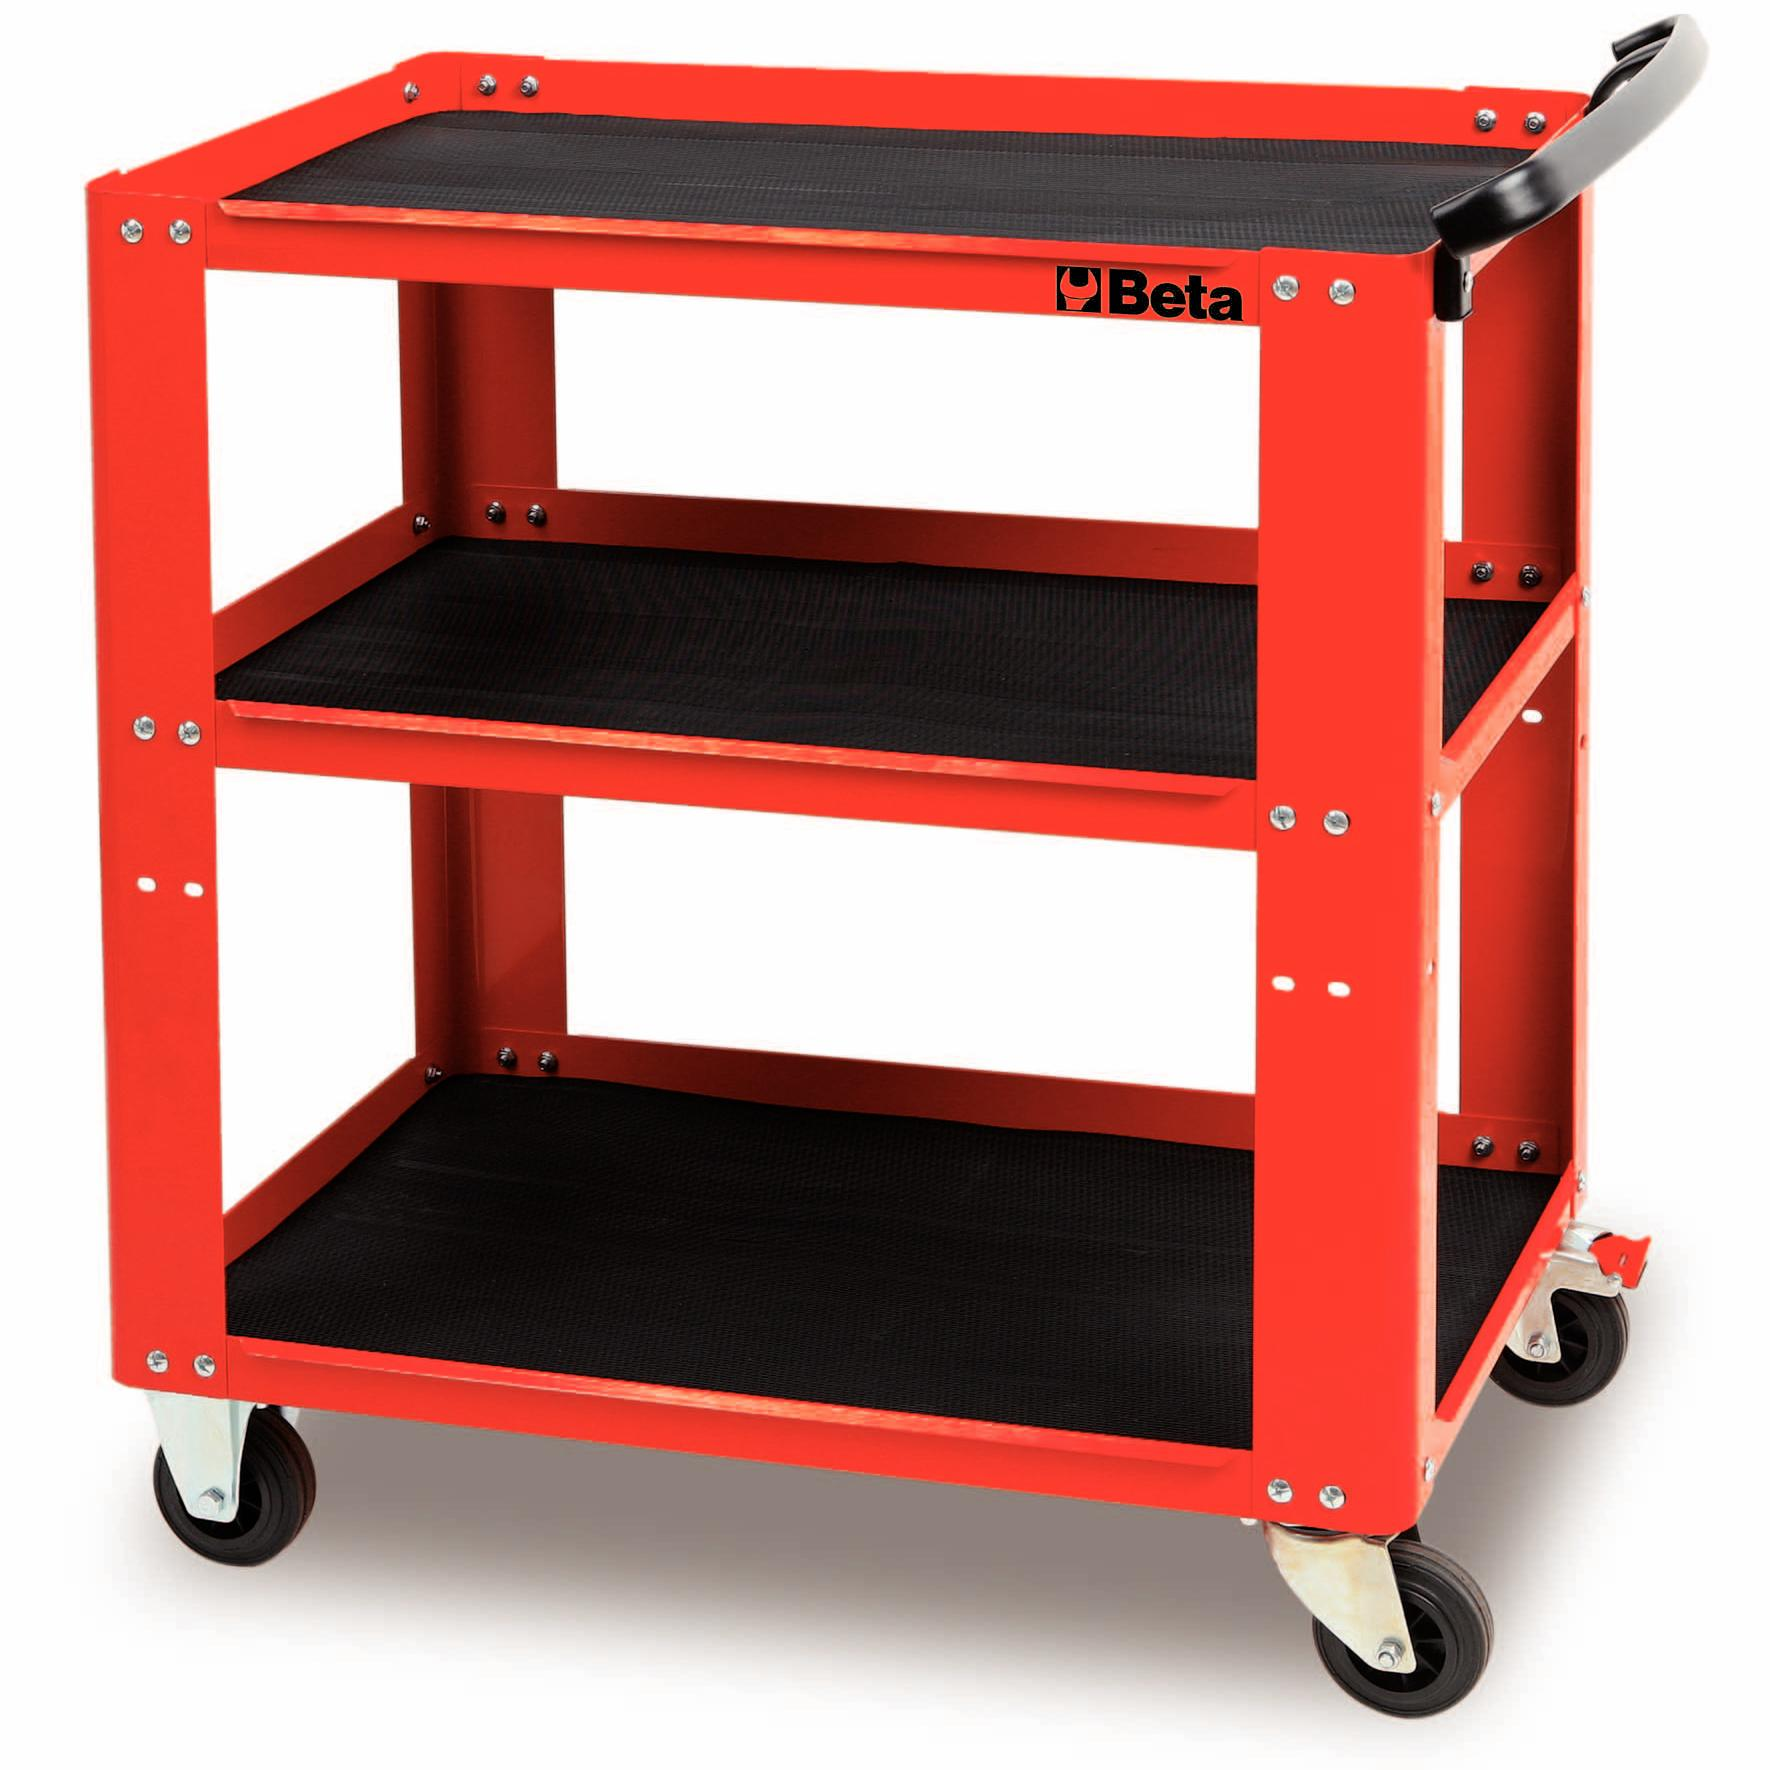 Beta Tools Workshop Tool Trolley Cart Box Rollcab Roller Cabinet Red